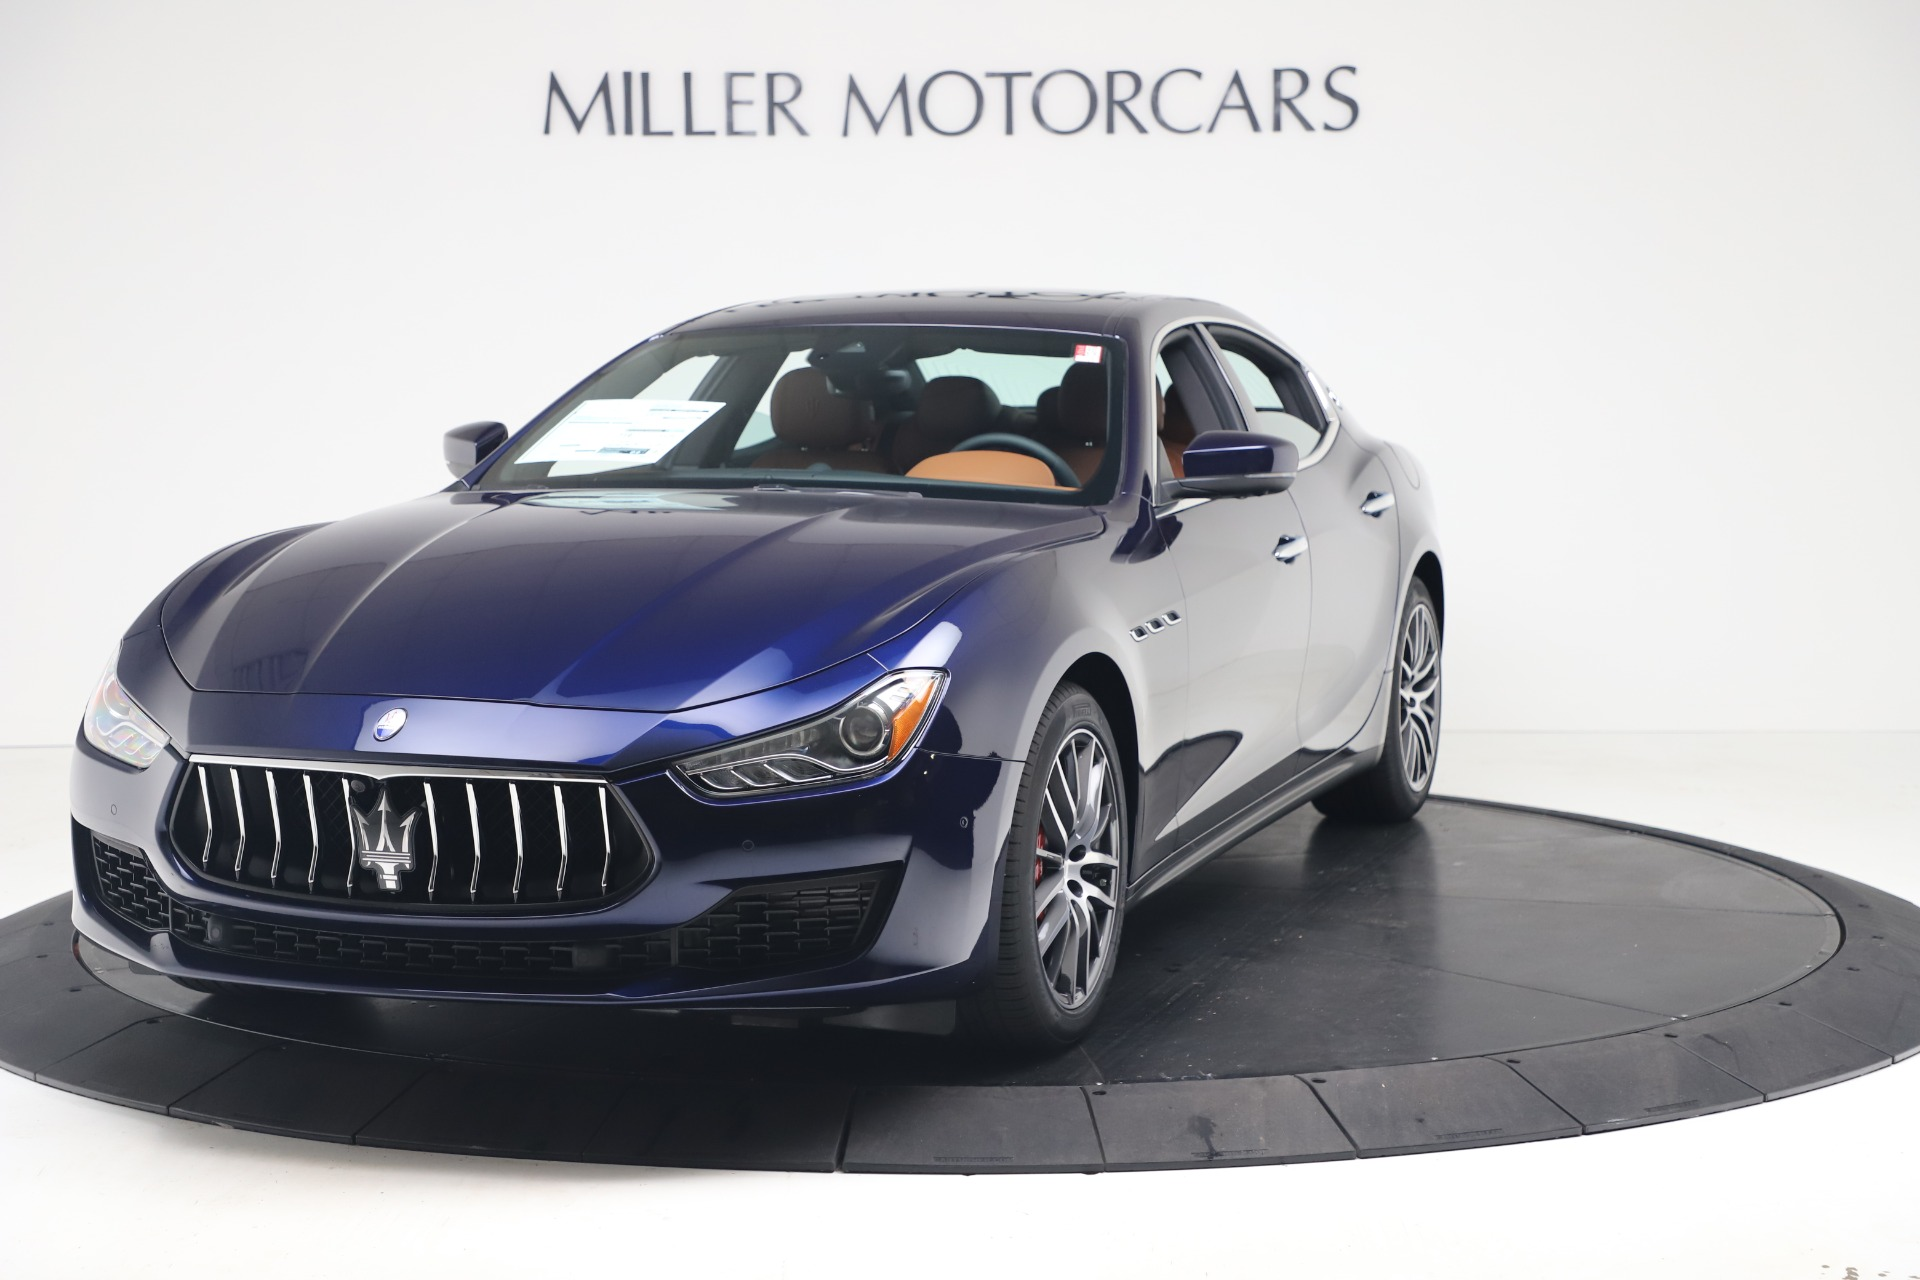 New 2020 Maserati Ghibli S Q4 for sale $85,535 at Bentley Greenwich in Greenwich CT 06830 1